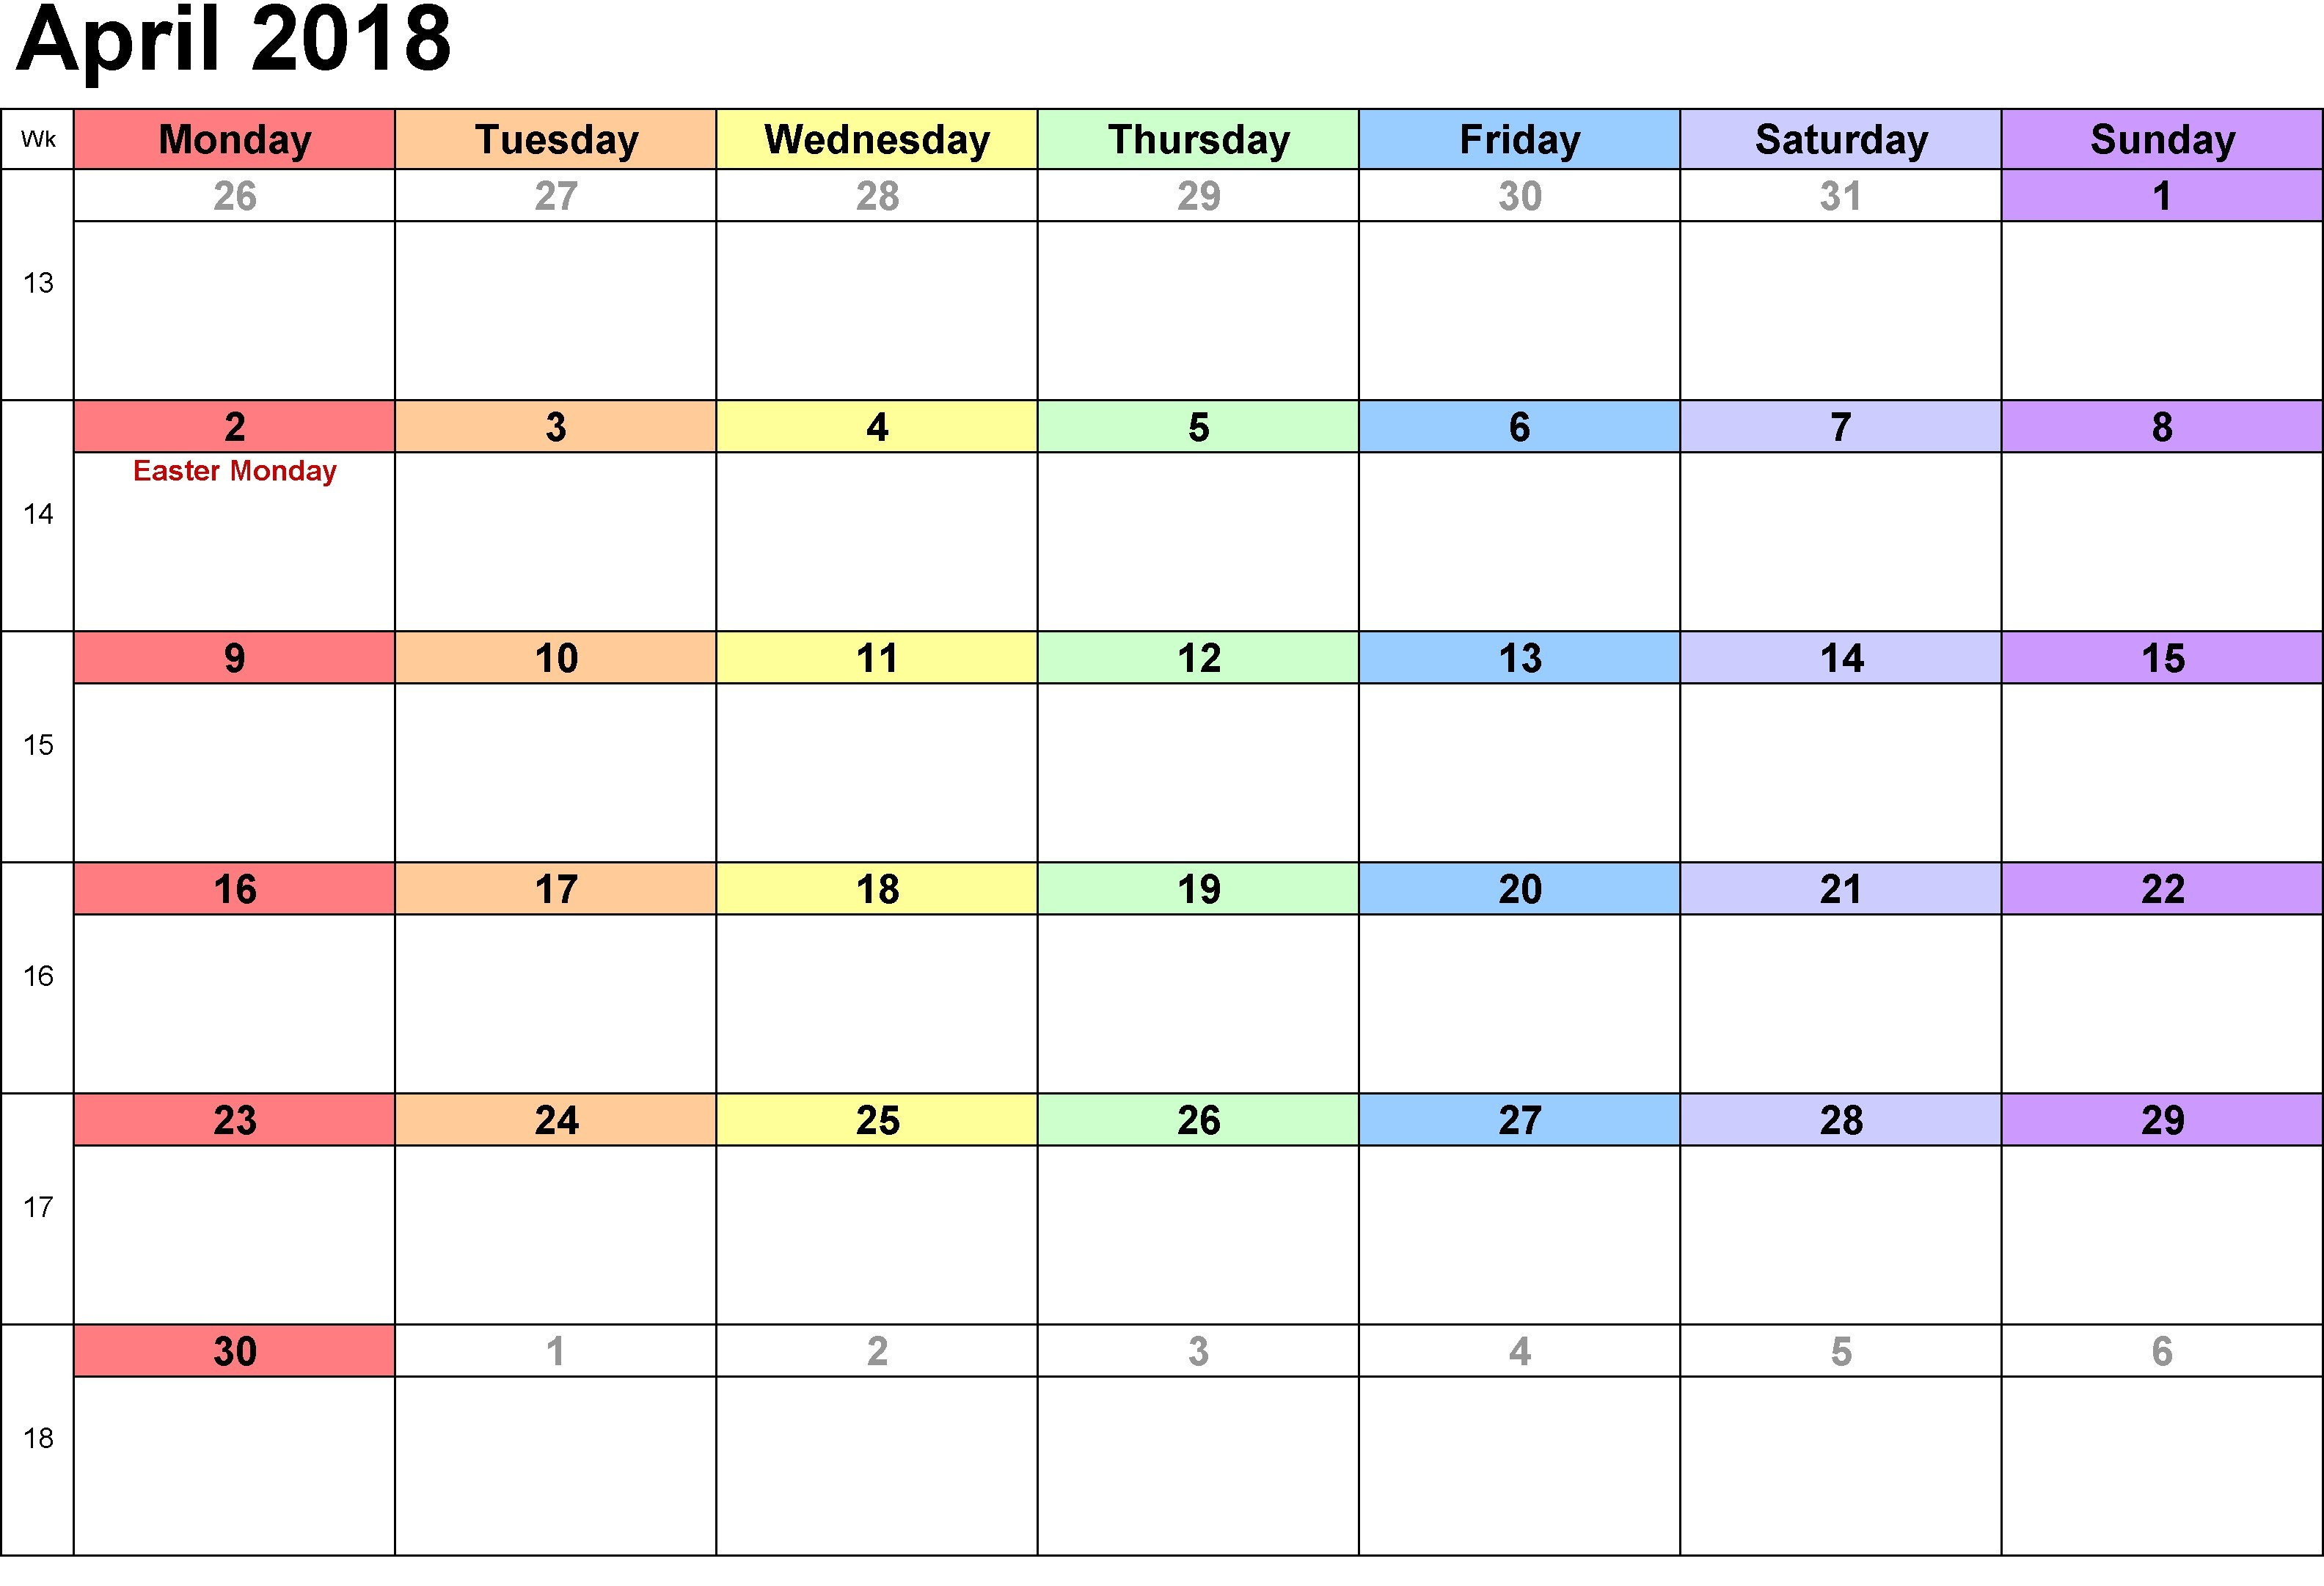 The Most Beneficial Example This From the Printable Calendar Dec 2017 to Jan 2018 April